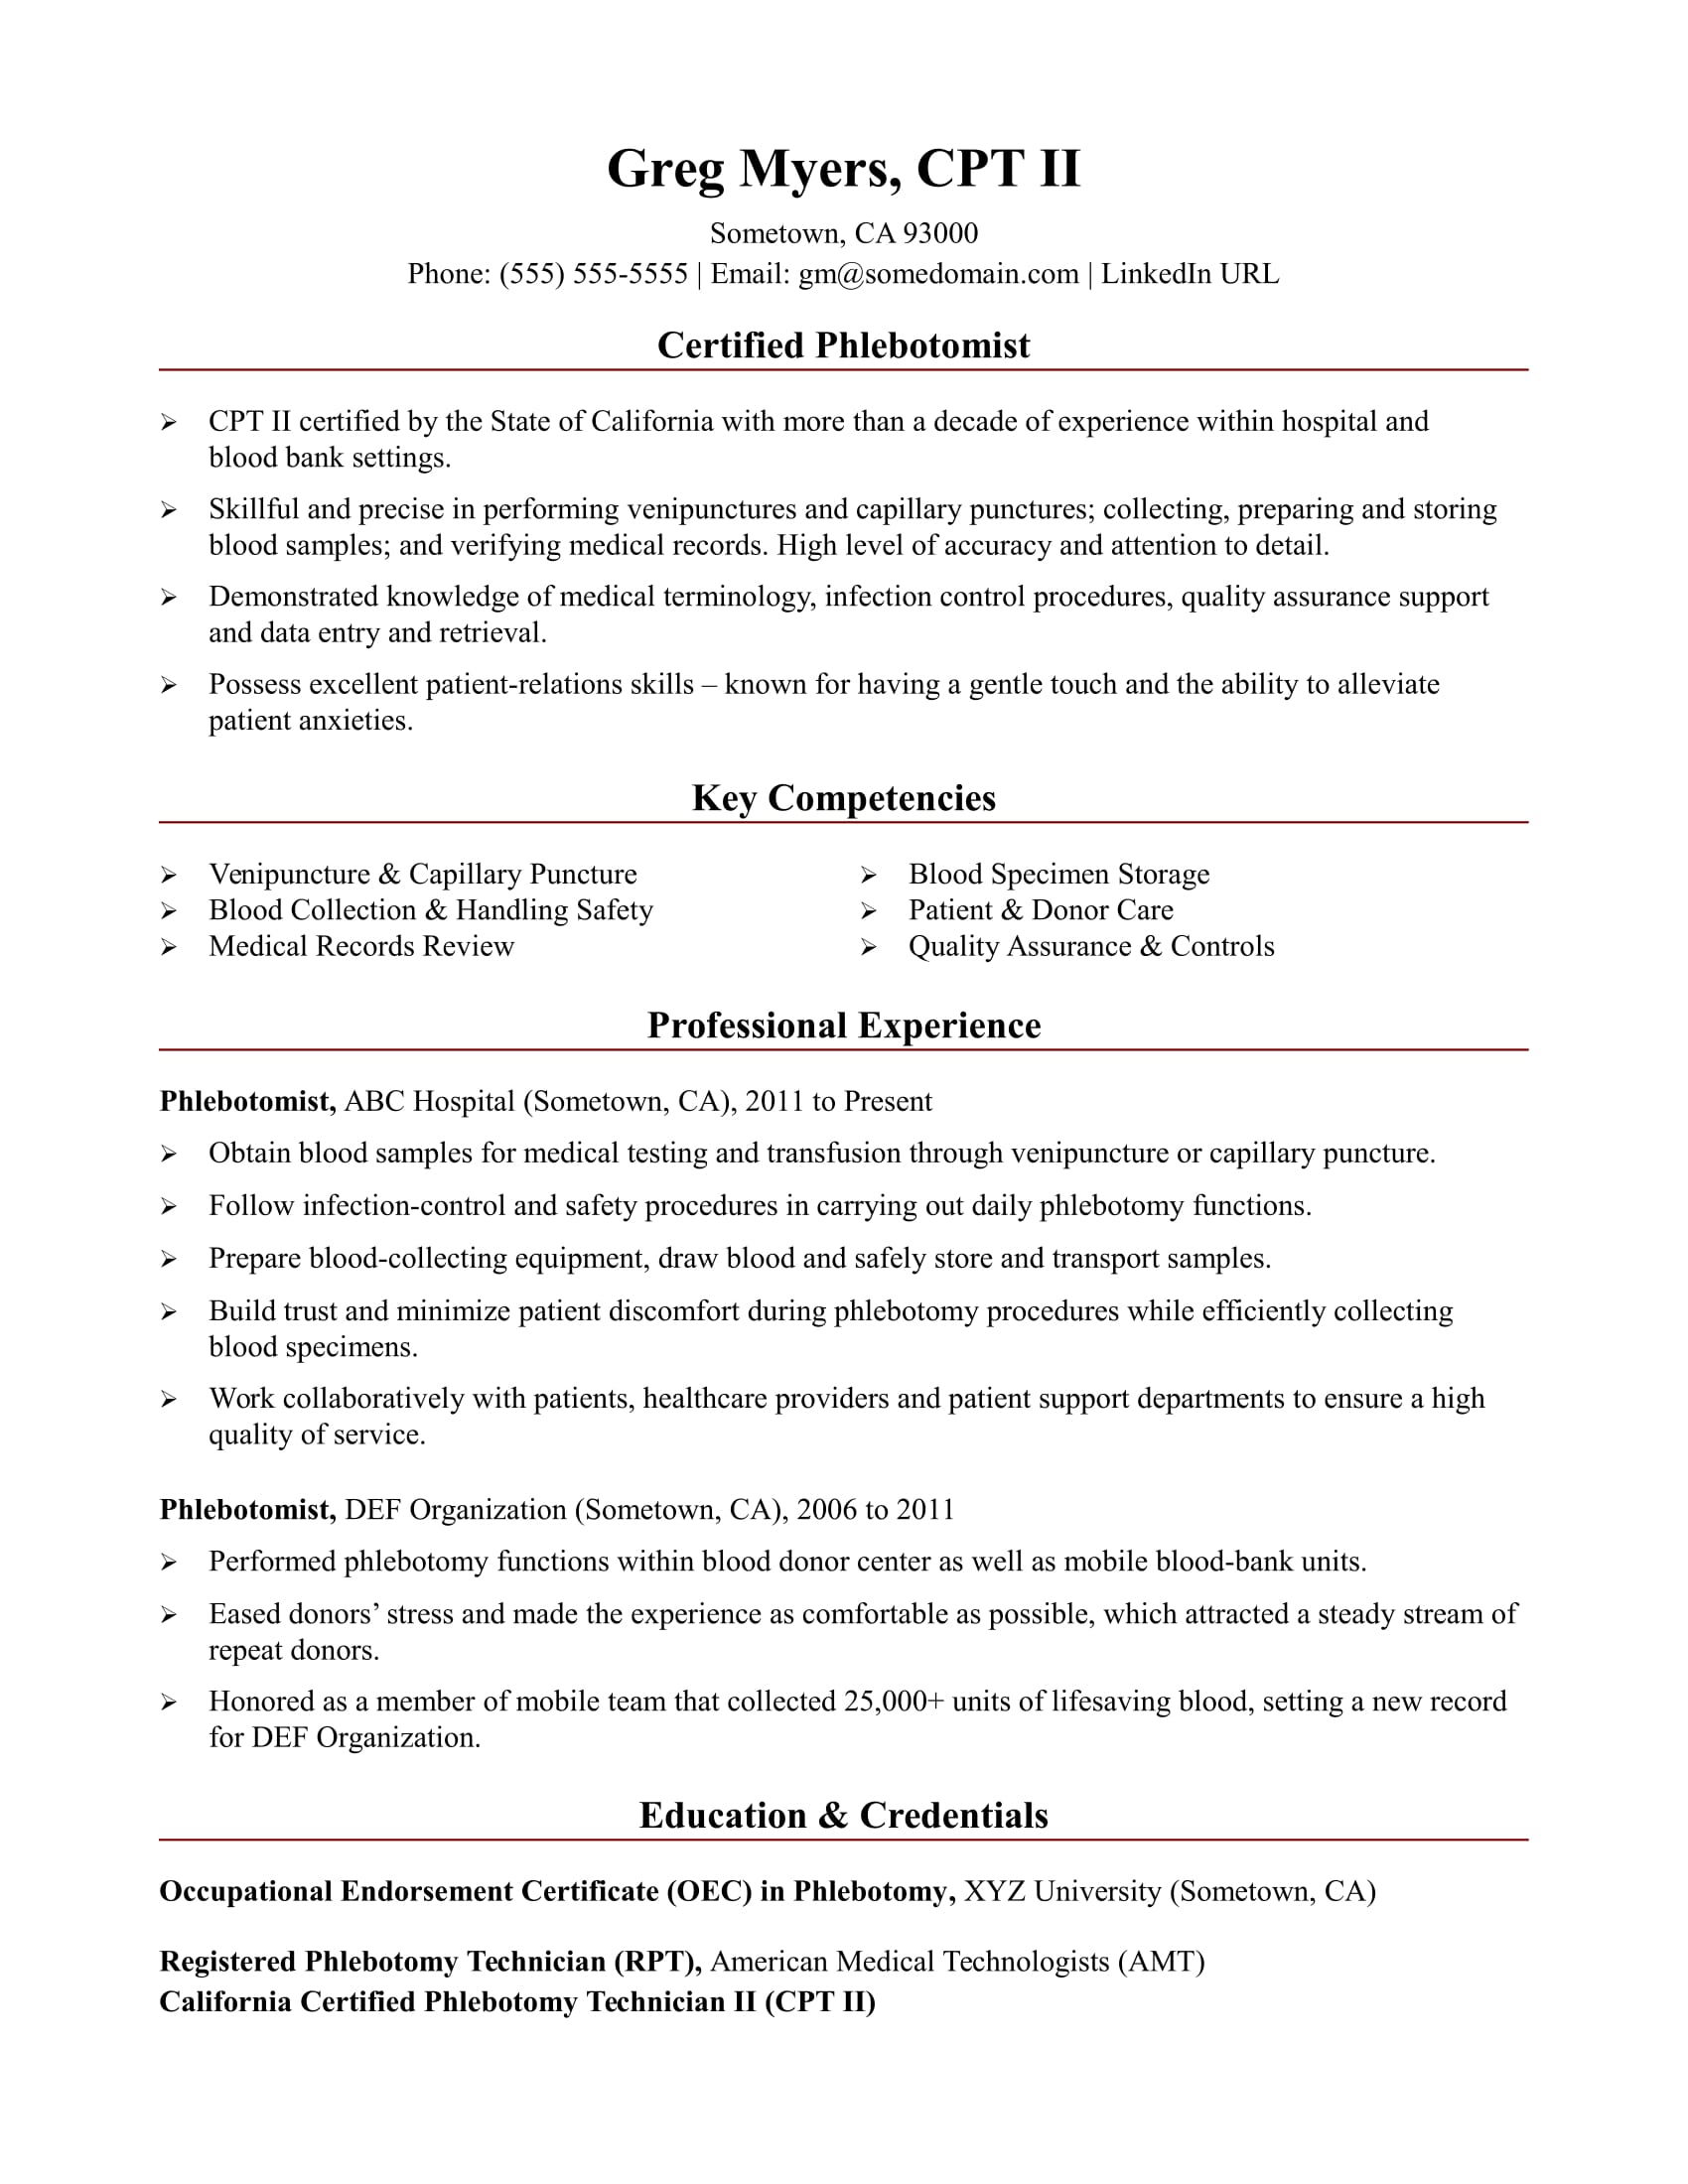 Phlebotomist Resume Sample Monster